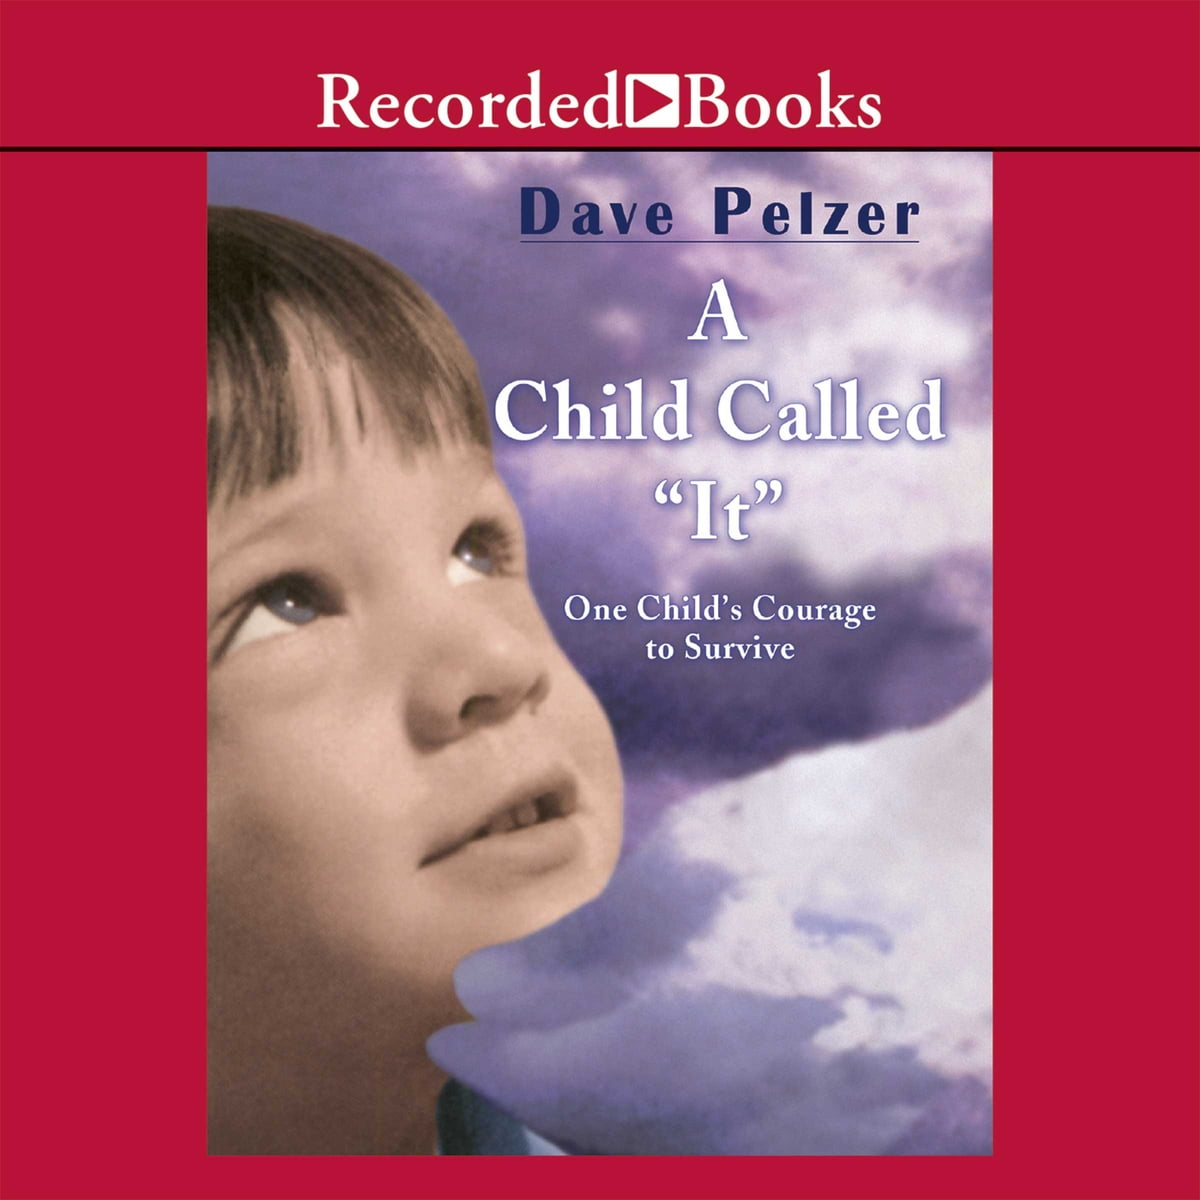 a child called it by dave pelzer essay A child called it was about the struggles of a young boy named dave pelzer dave was put through hard times and at some point lost hope in his dreams and doubted the humanity of mankind, but in the end because of his strong will he was able to overcome his problems and make a better life for himself.